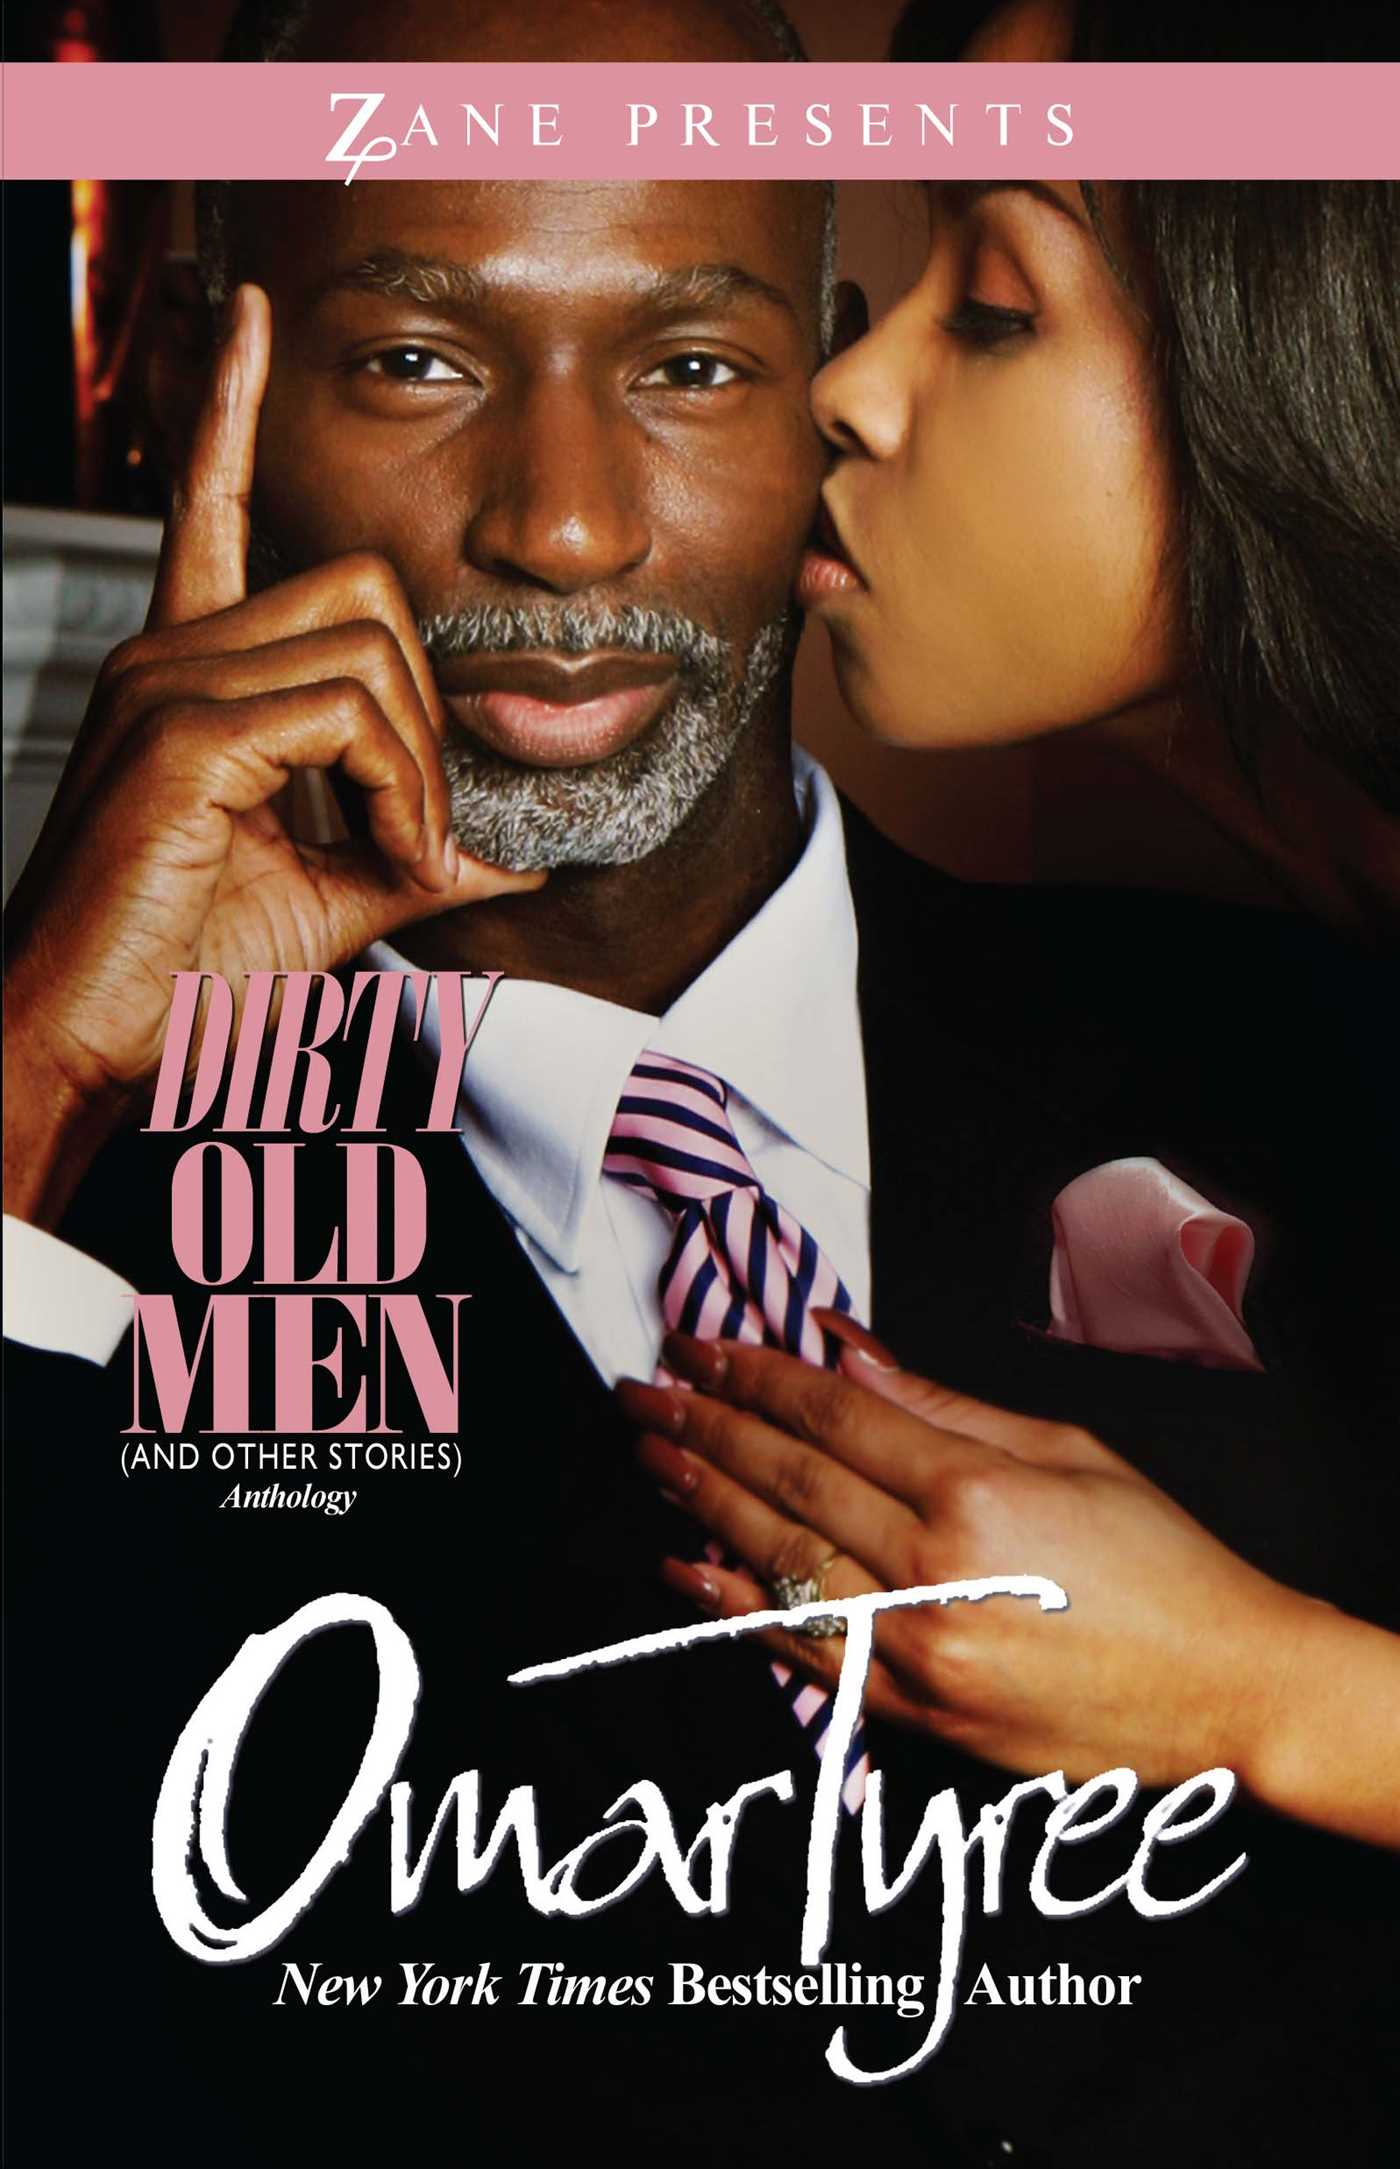 Dirty old men and other stories 9781593092740 hr